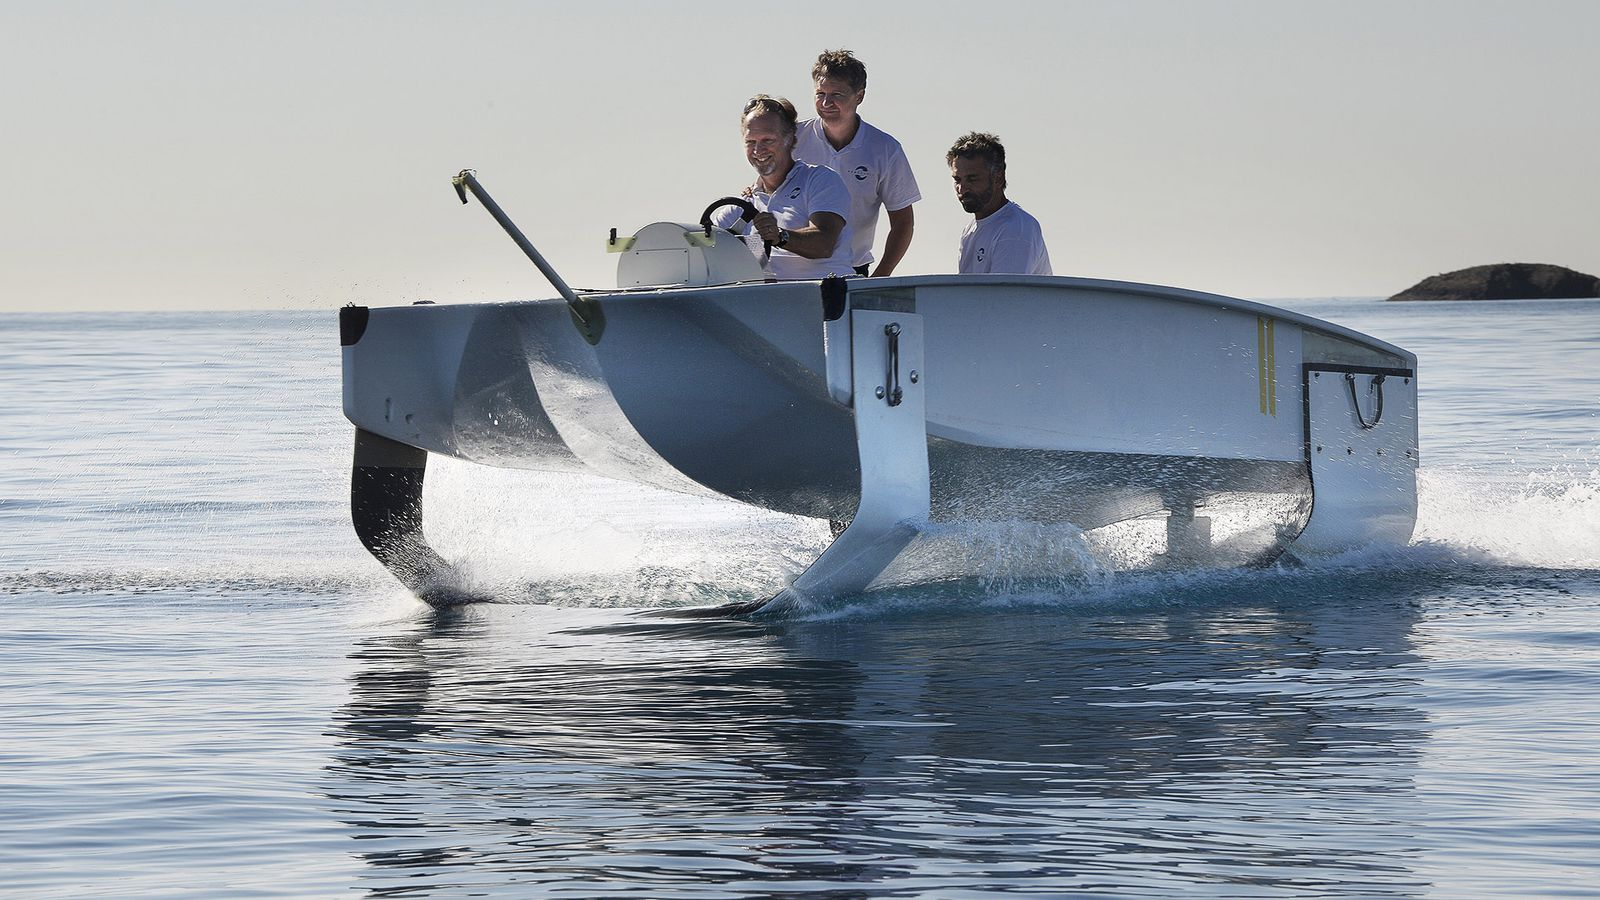 Watch this experimental river taxi fly above the surface of the waves